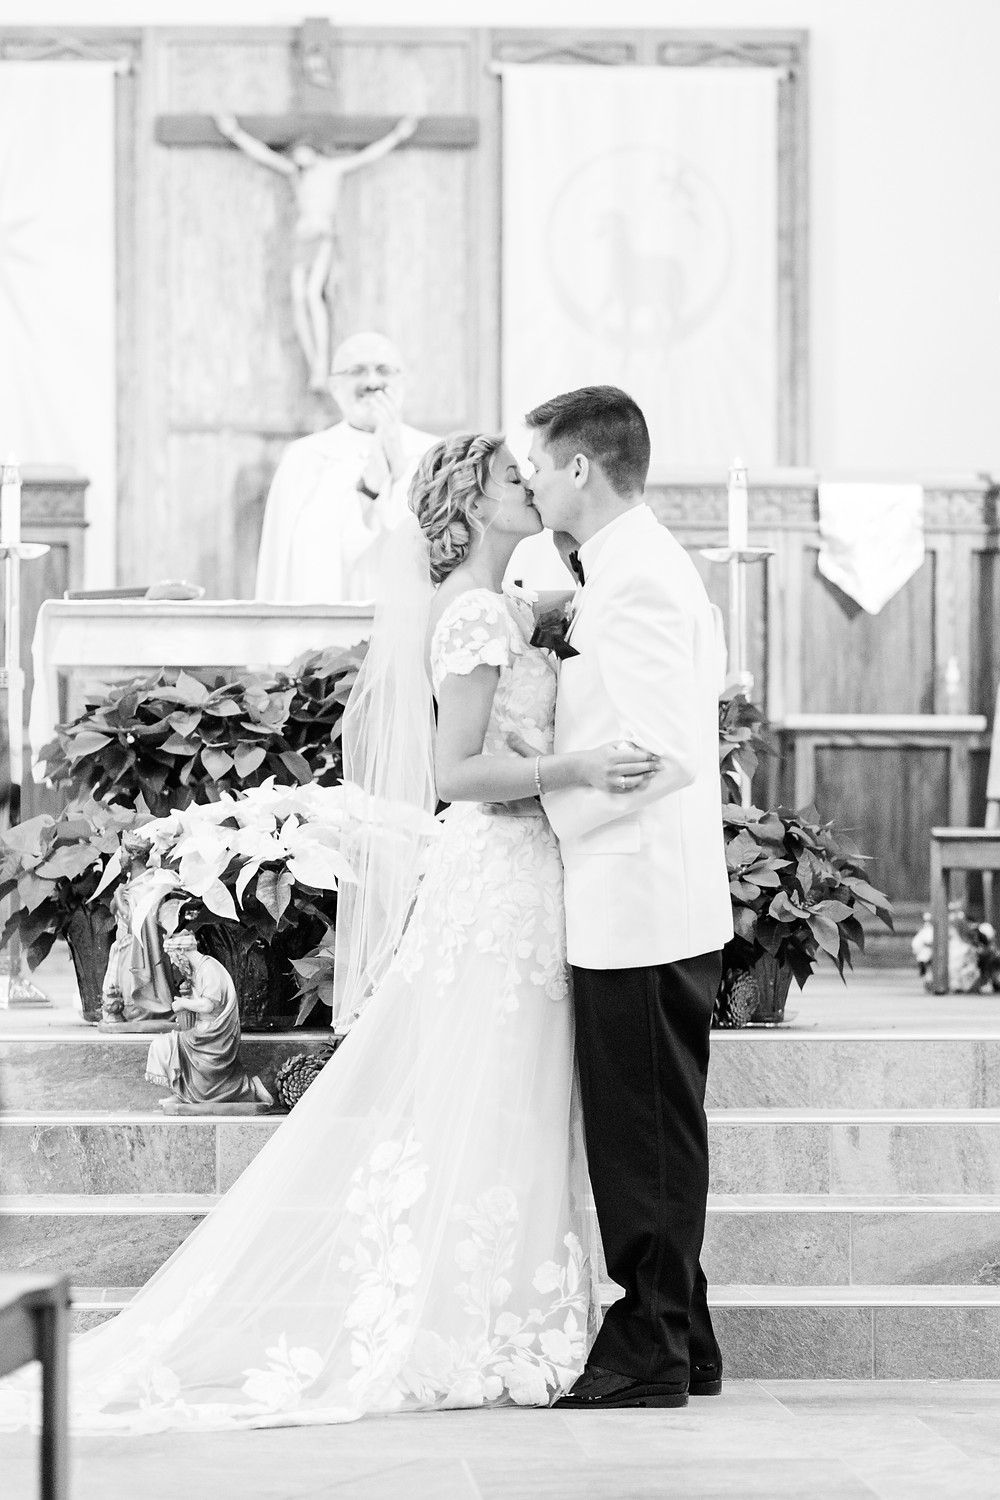 josh and Andrea photography husband and wife team michigan winter wedding south haven st basils bride and groom first kiss front of church